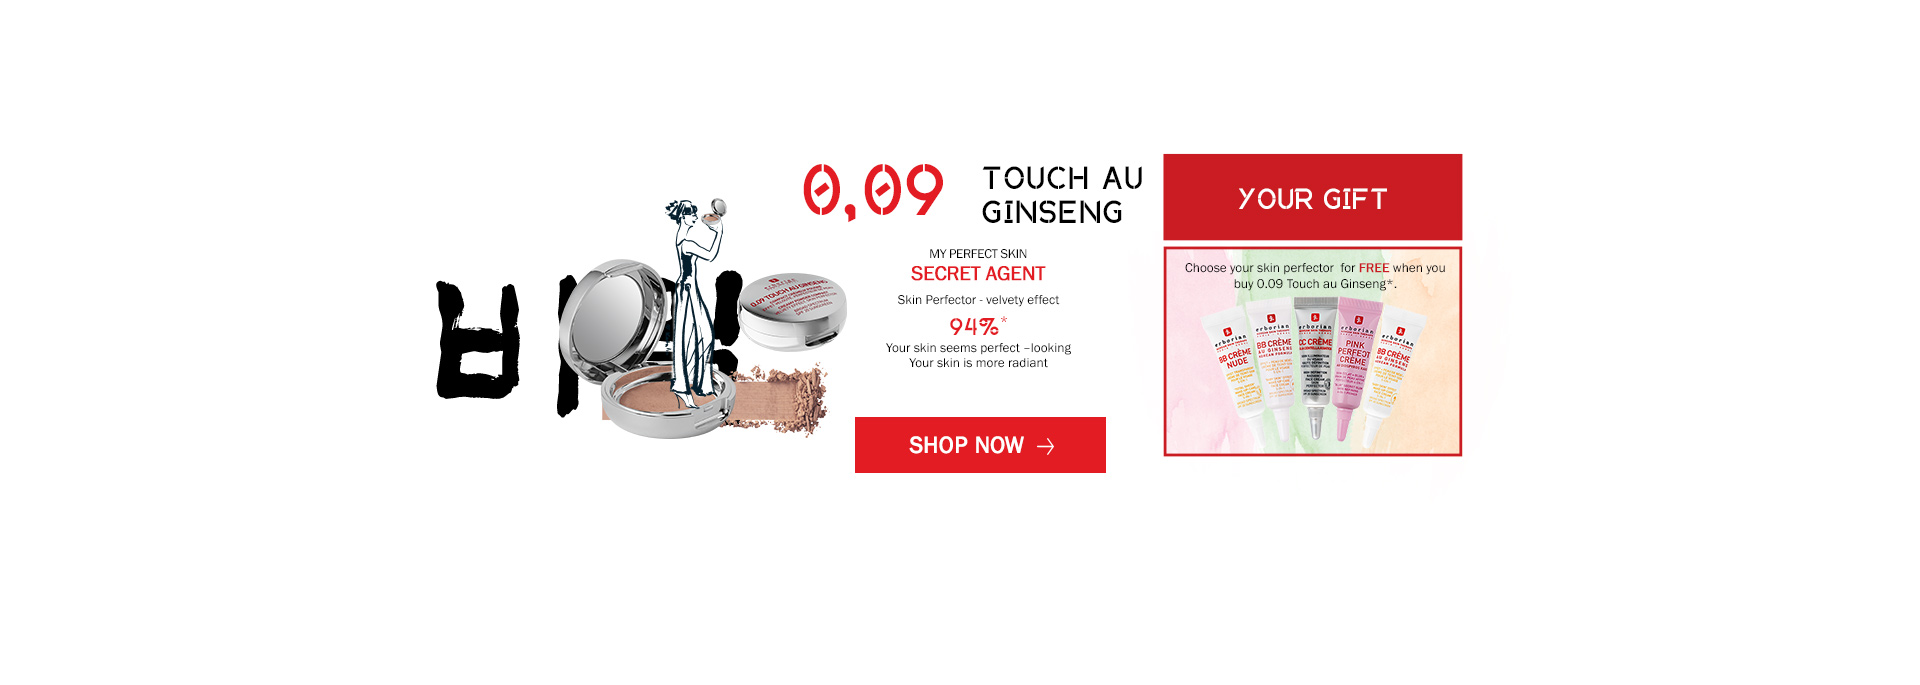 NEW 0.09 Touch au Ginseng